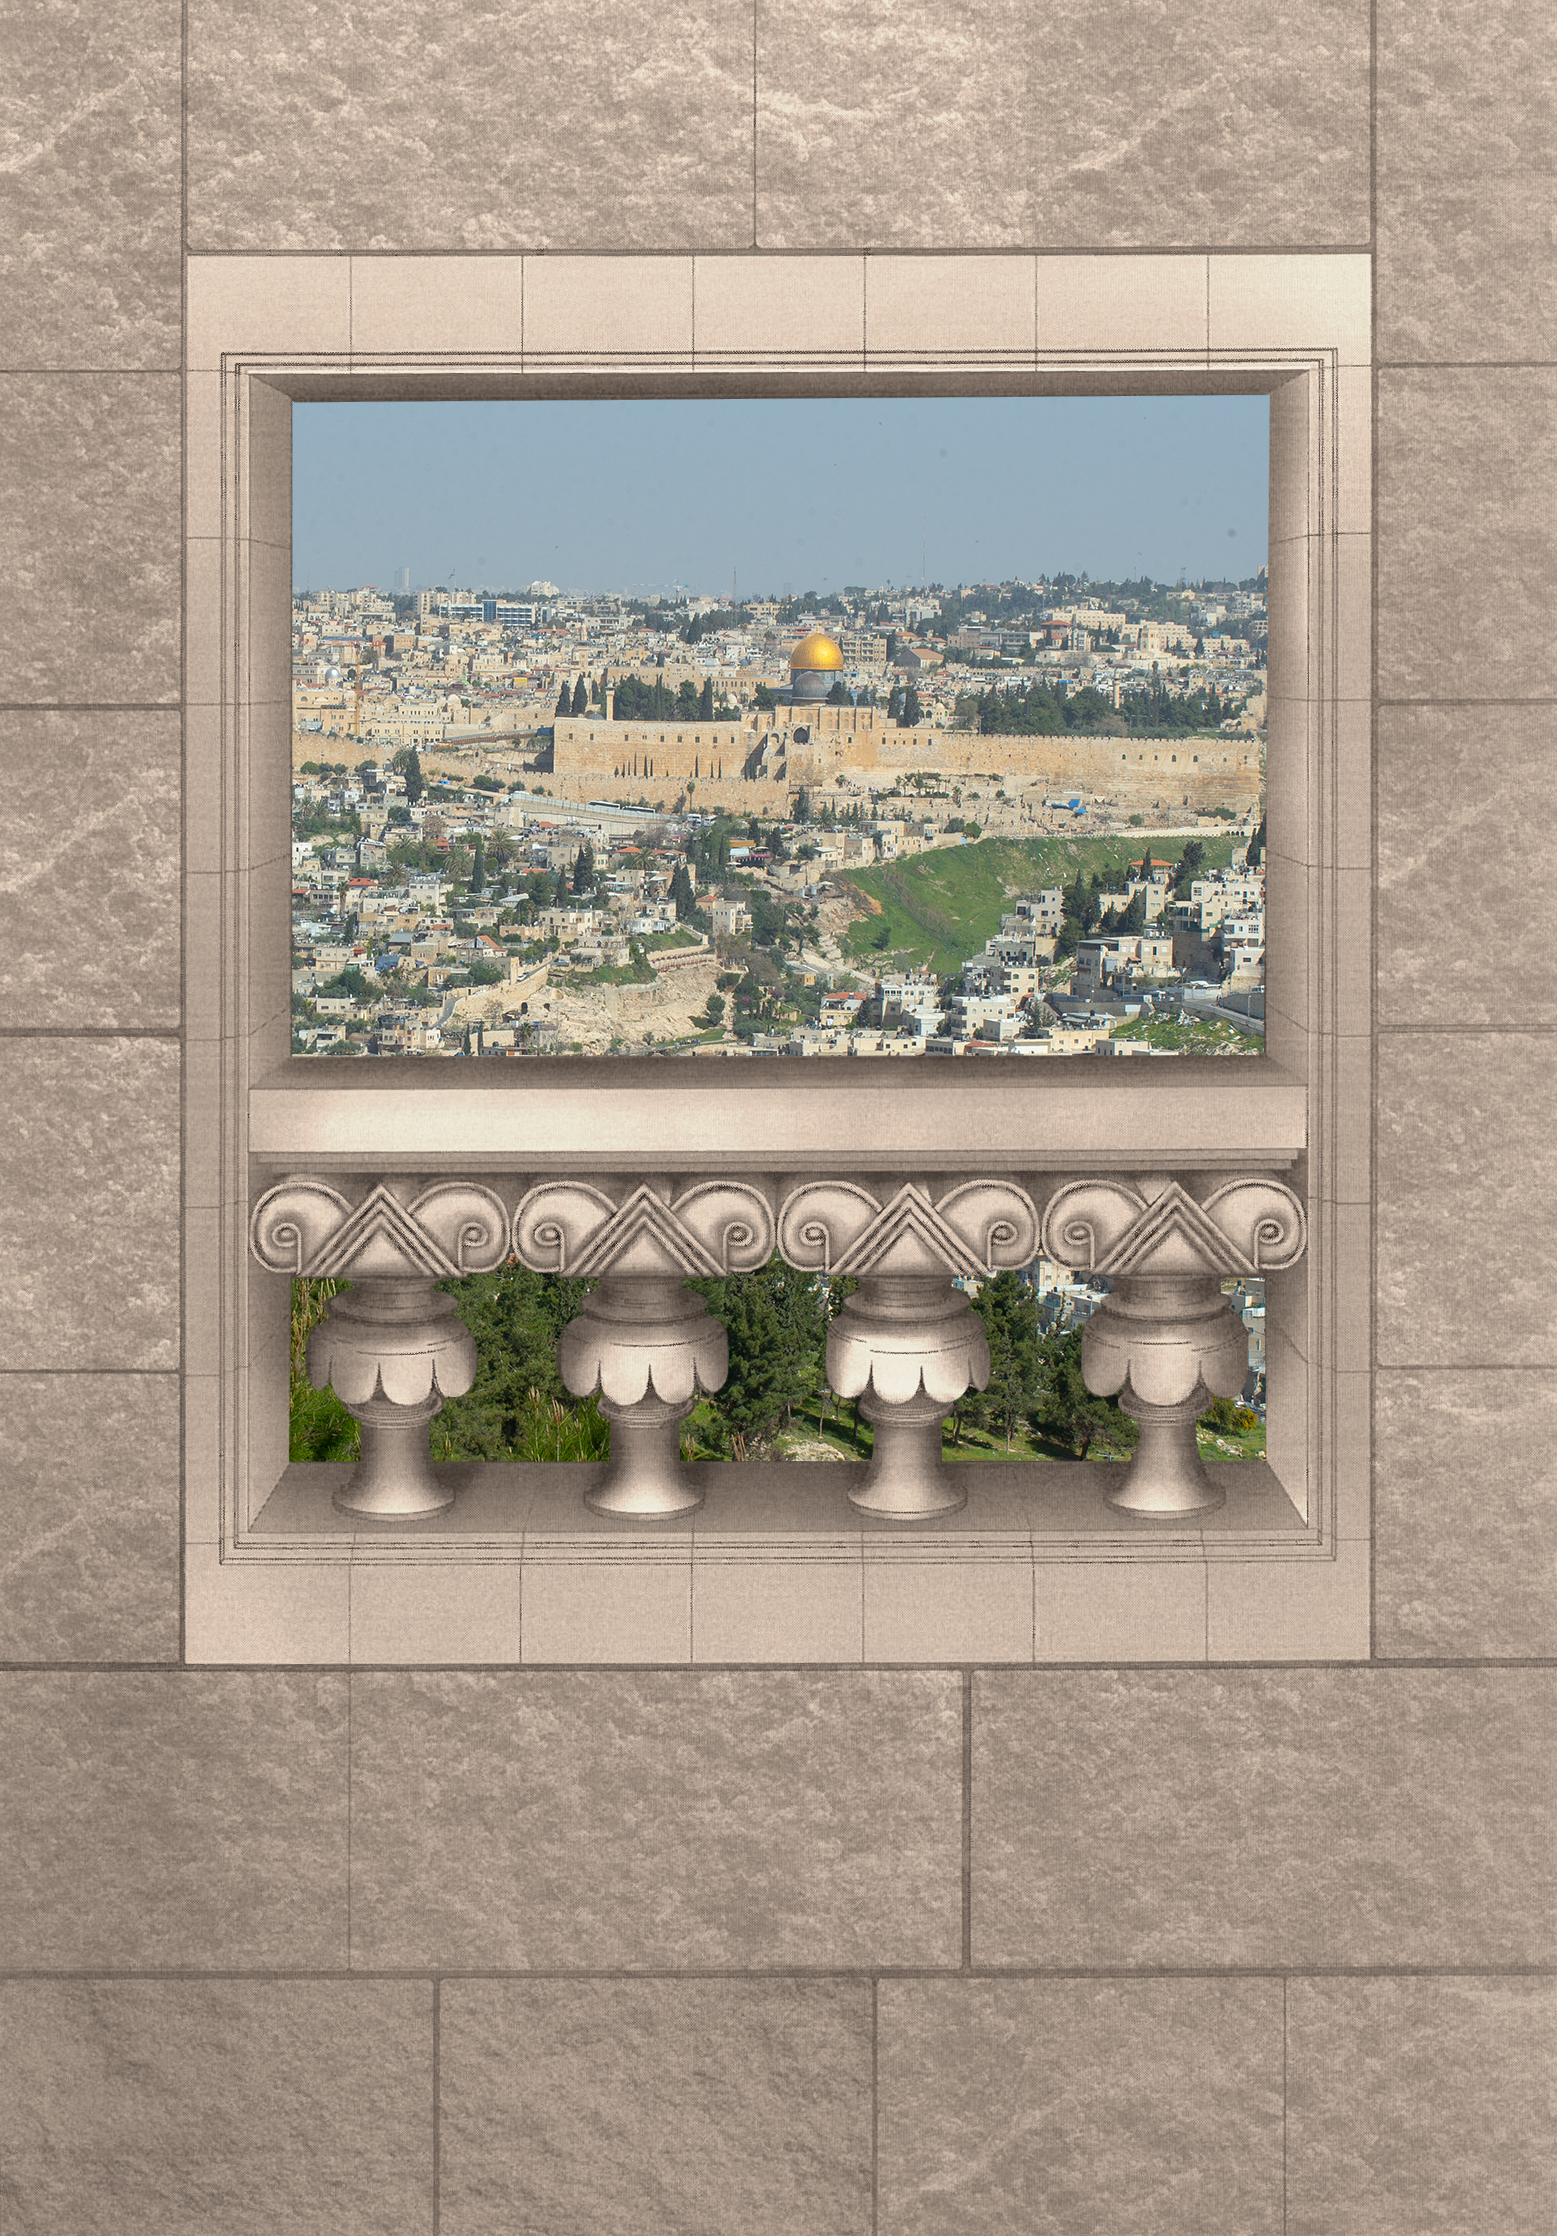 Simulation of the window of the royal estate. Or Rose, Israel Antiquities Authority